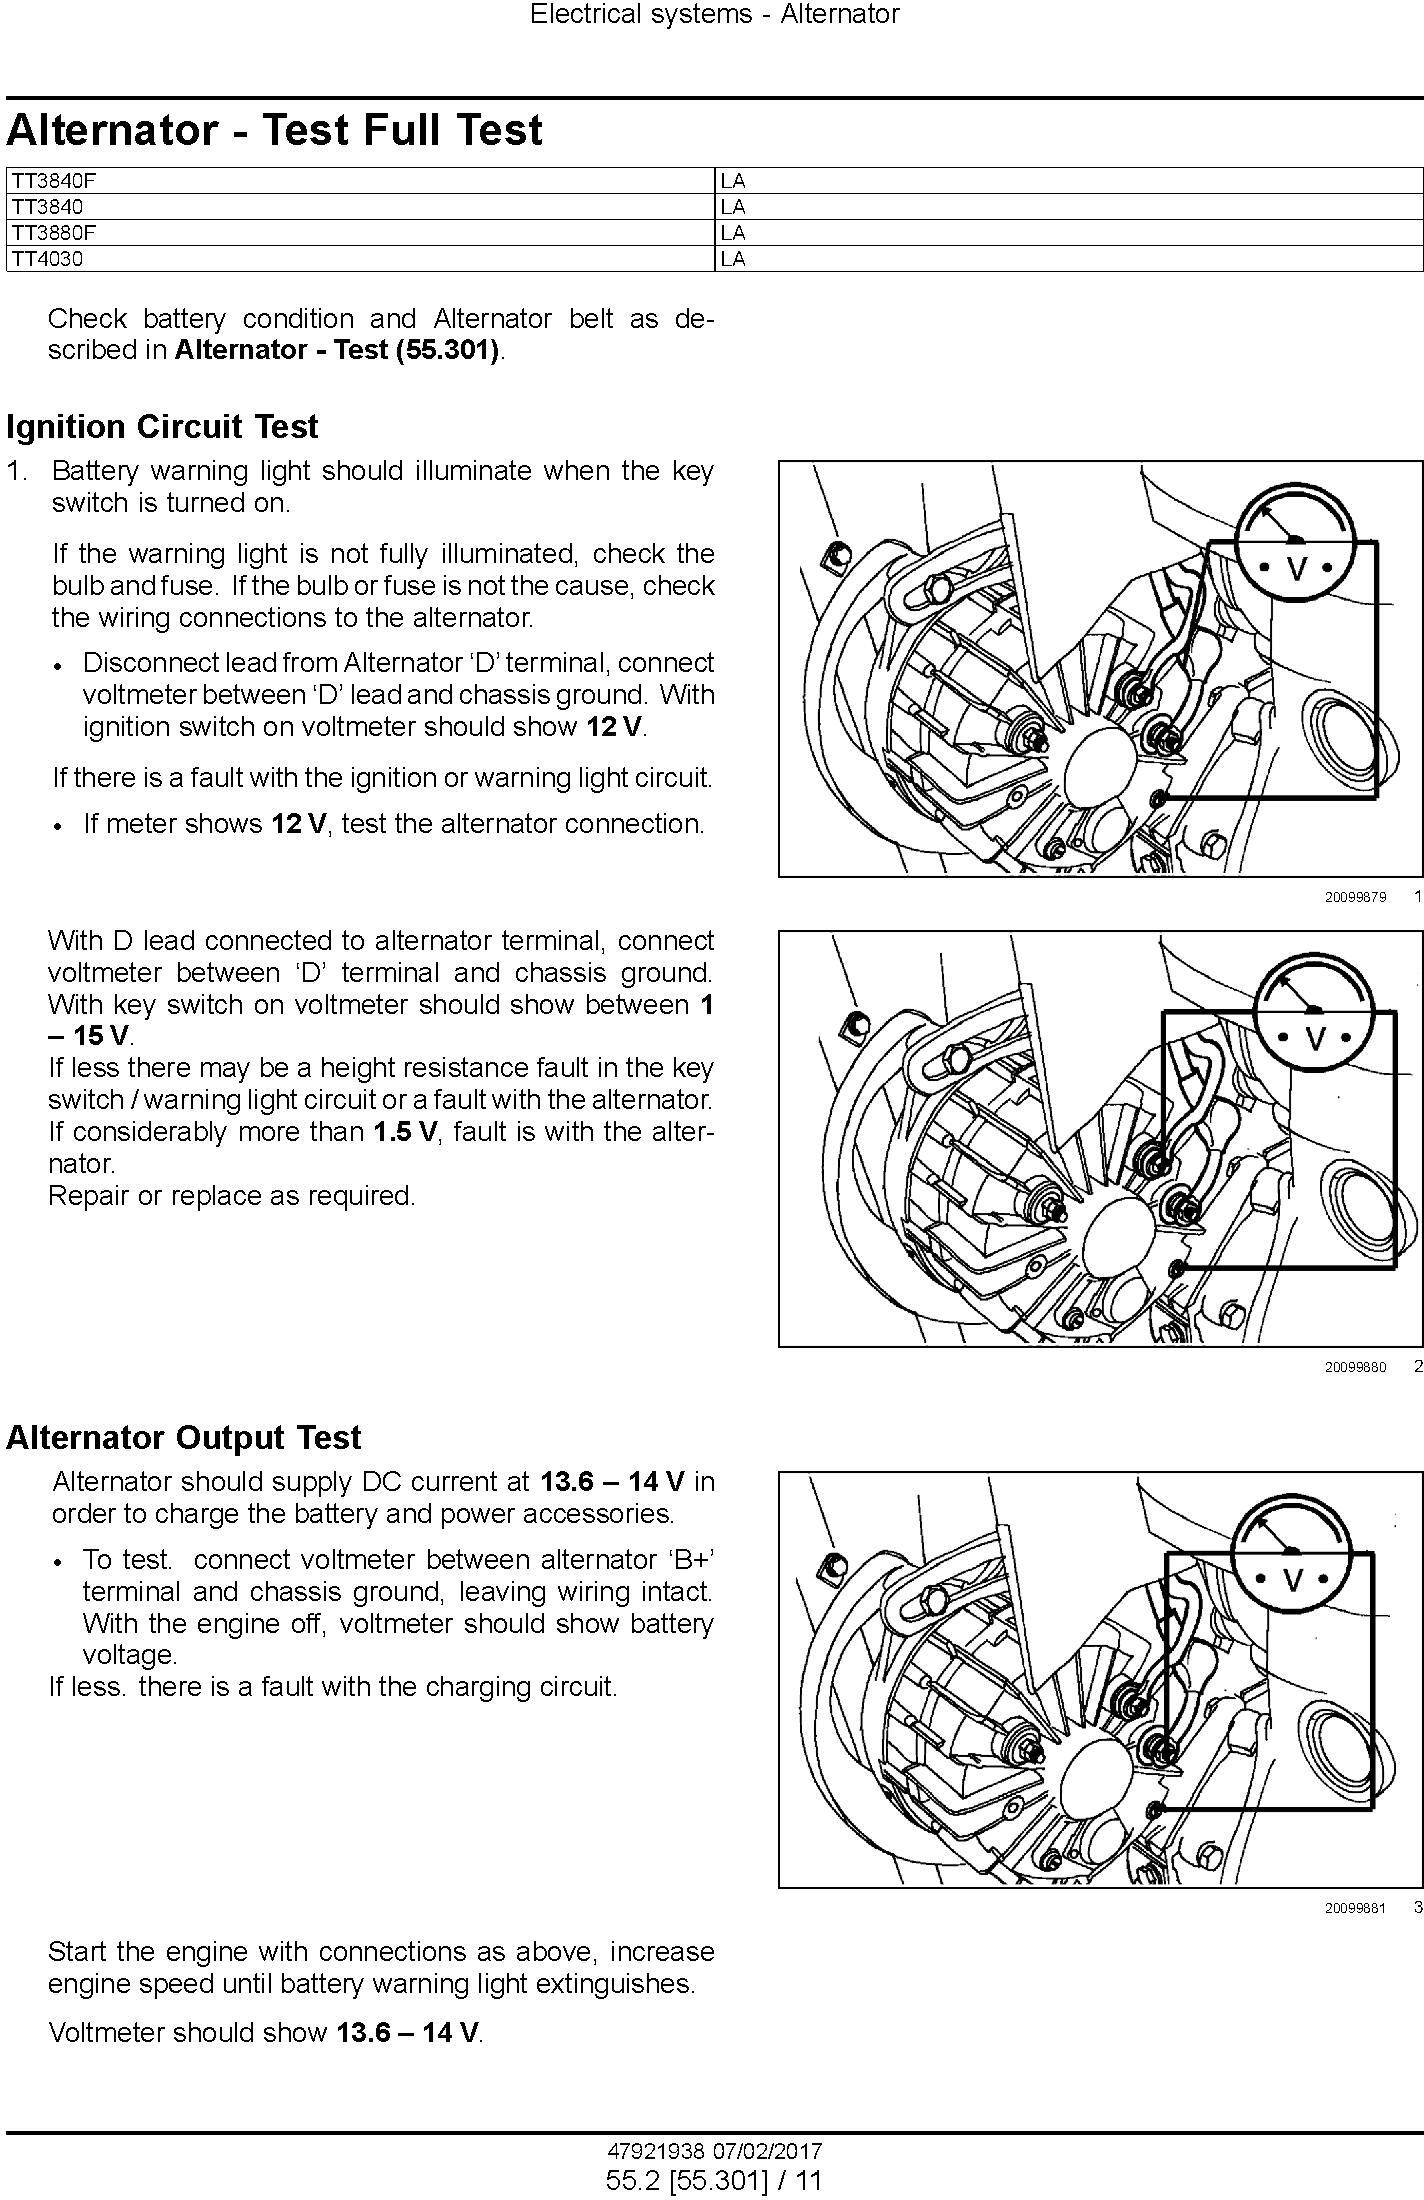 New Holland TT3840, TT3840F, TT4030, TT3880F Tractor Service Manual (Latin America) - 1